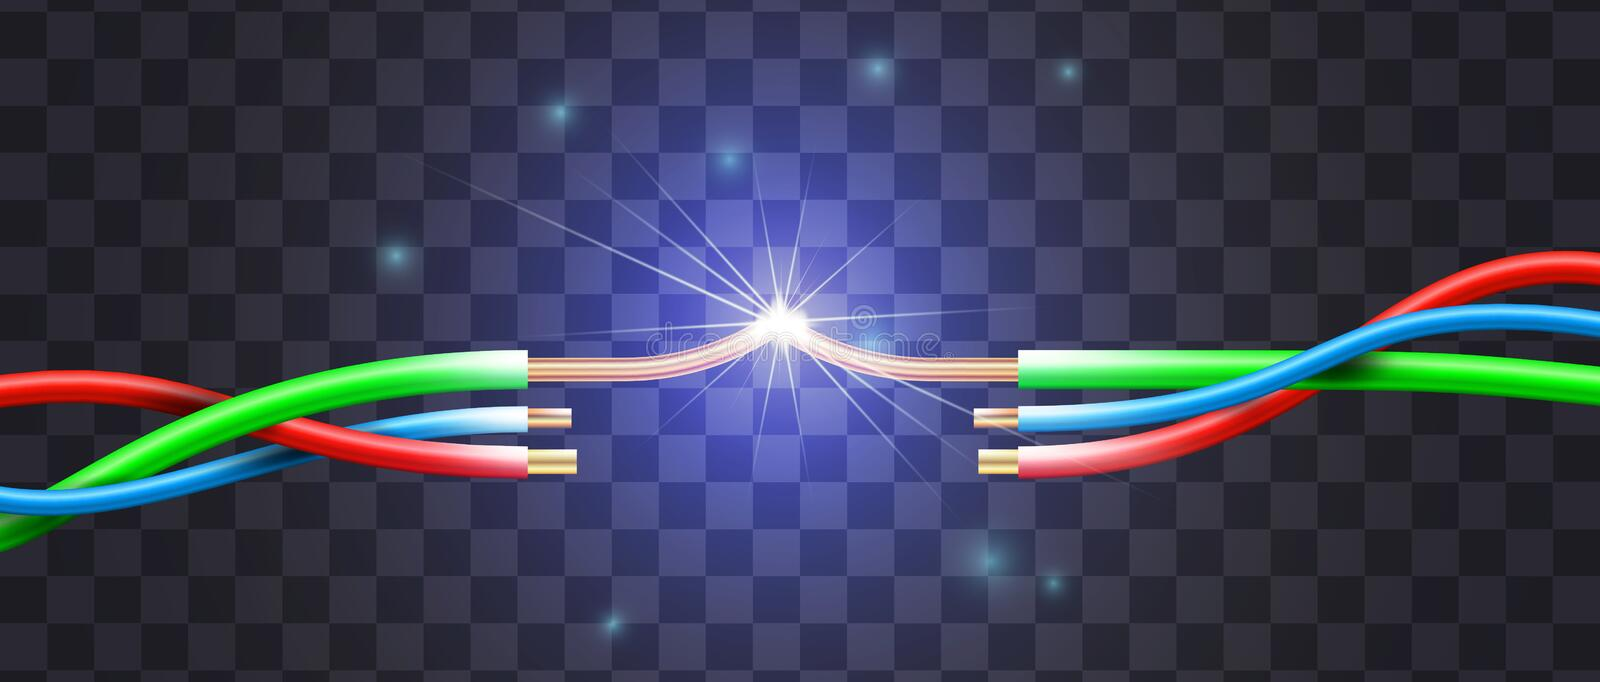 Realistic short circuit by the example of a three wire break in royalty free illustration